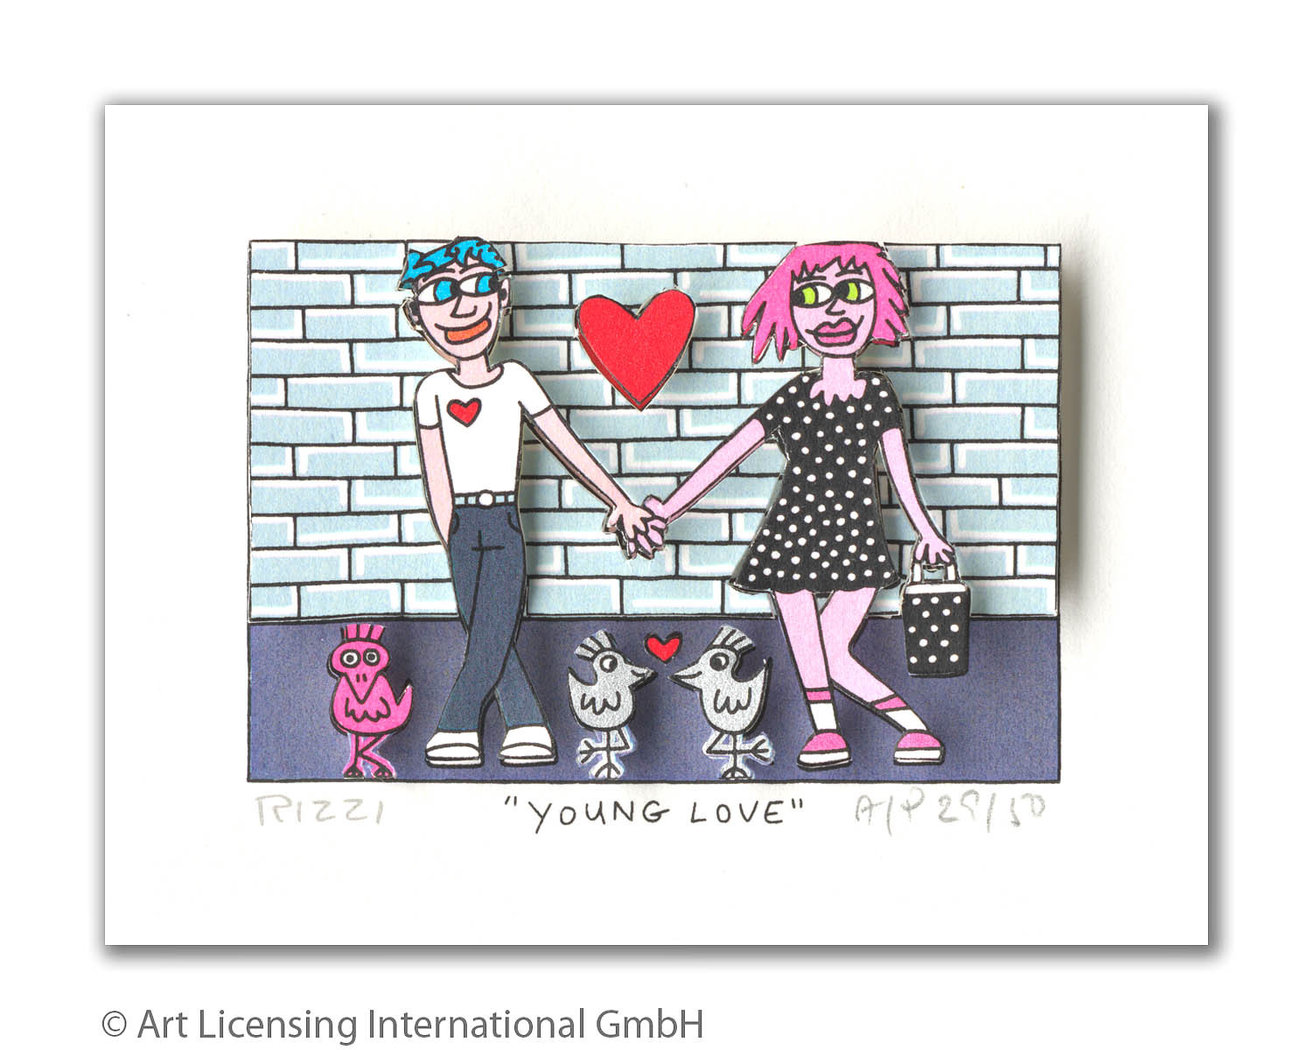 James Rizzi - YOUNG LOVE